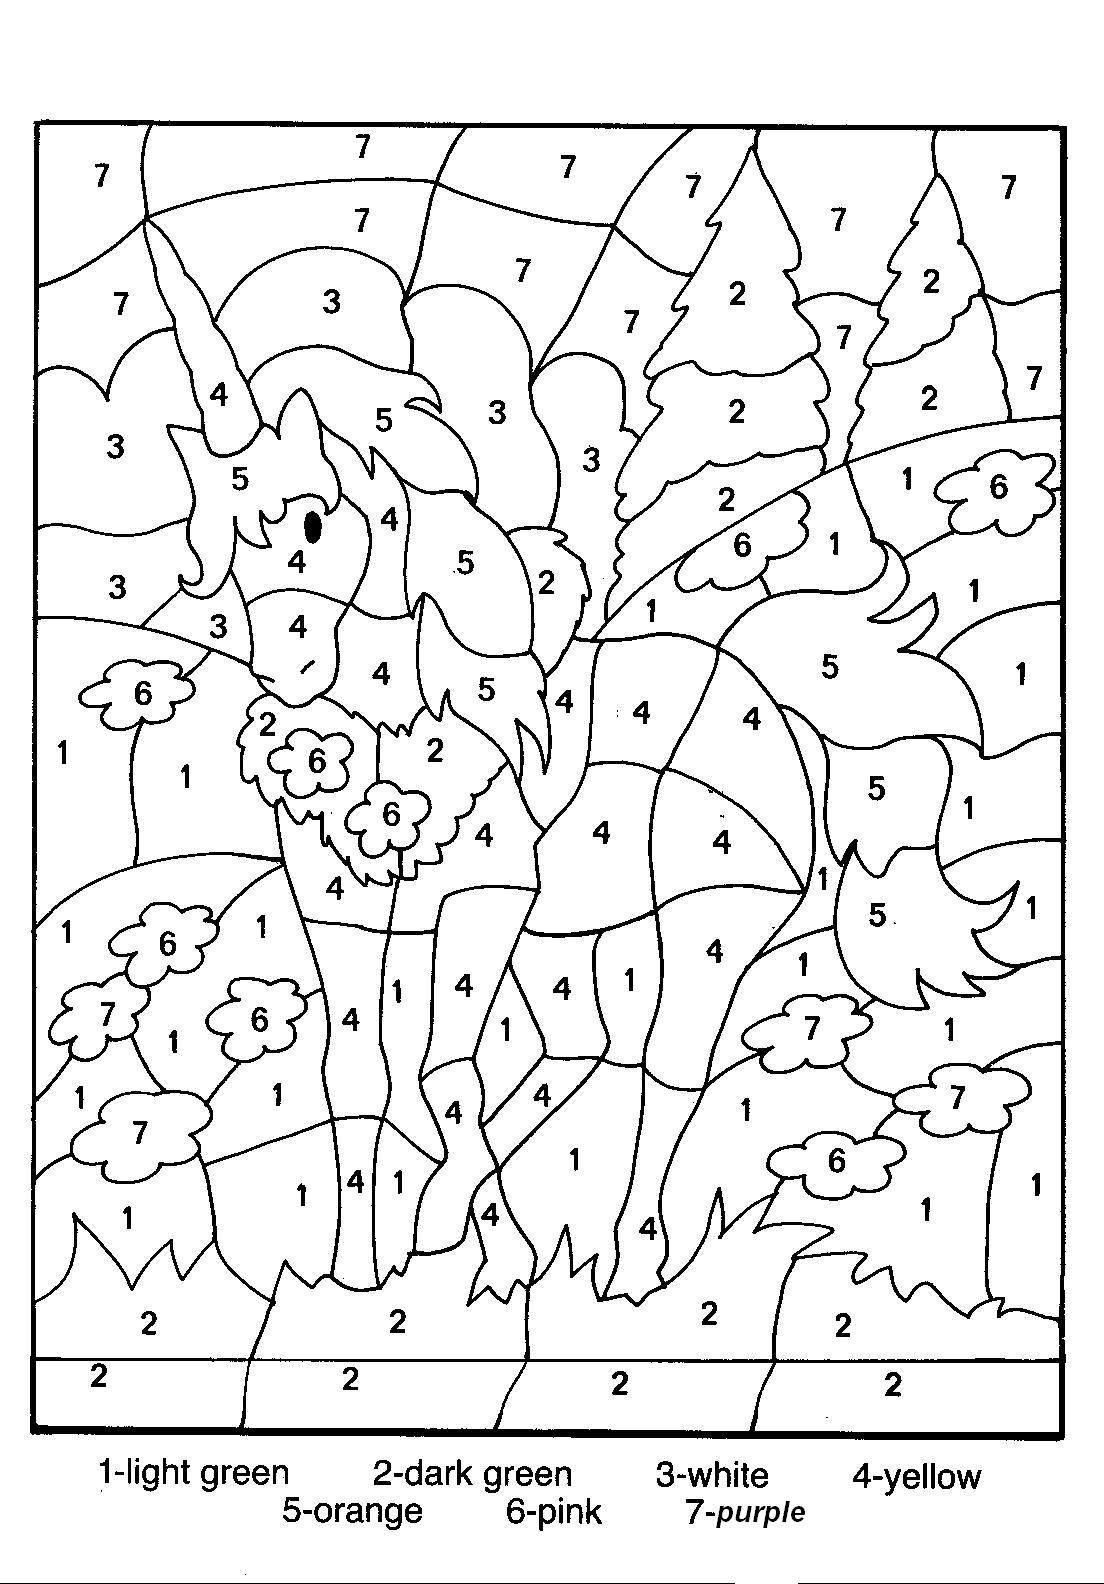 color-by-number-coloring-pages-l-385d15eaac30450b